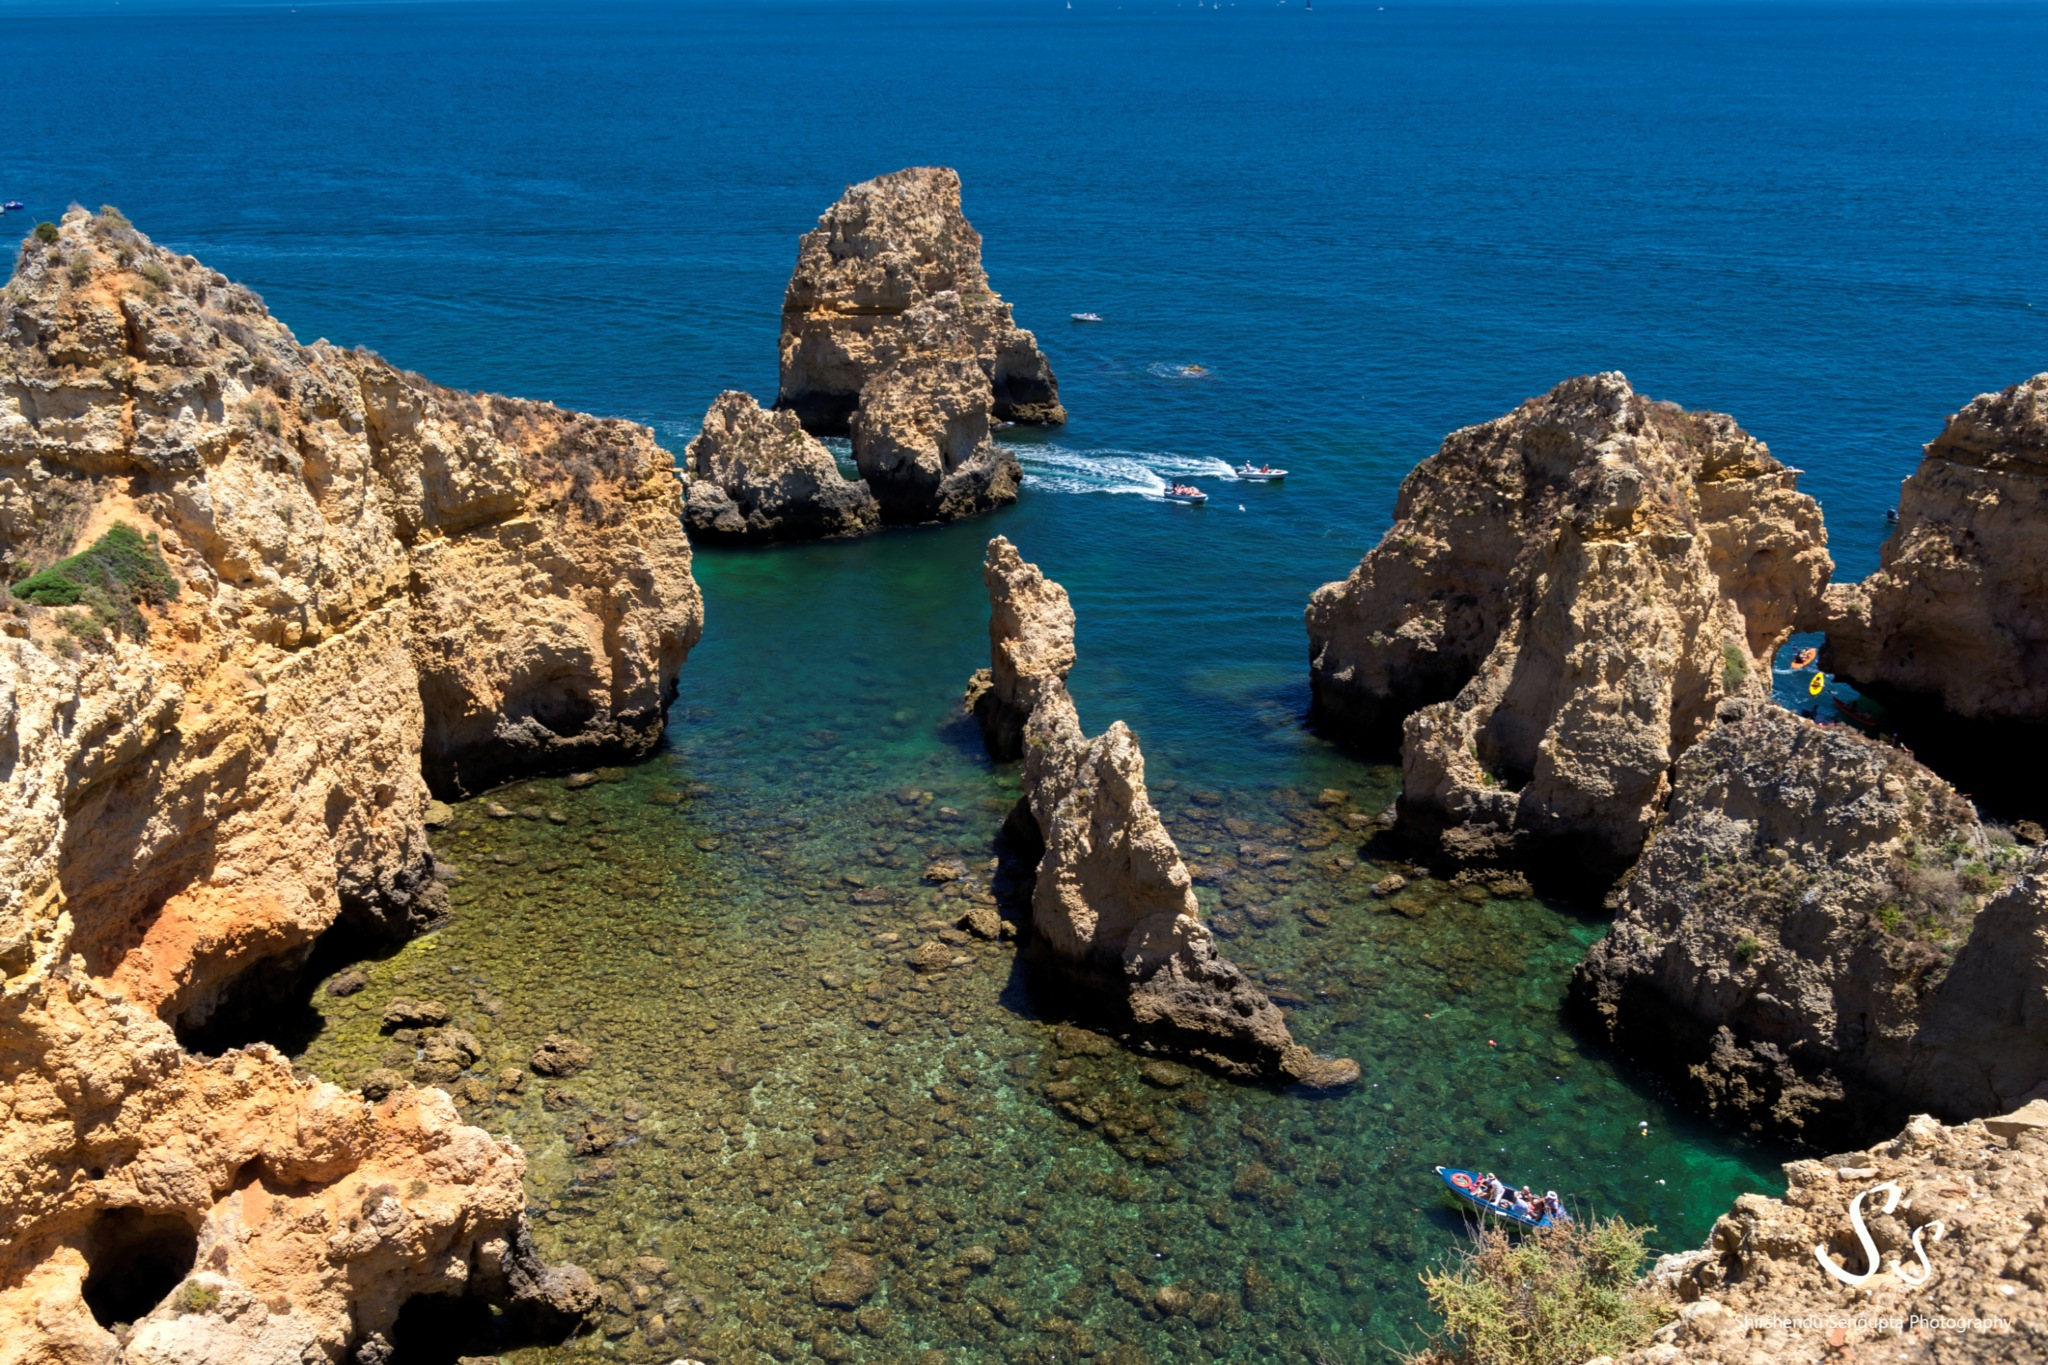 Algarve by shirshendu.sengupta.9